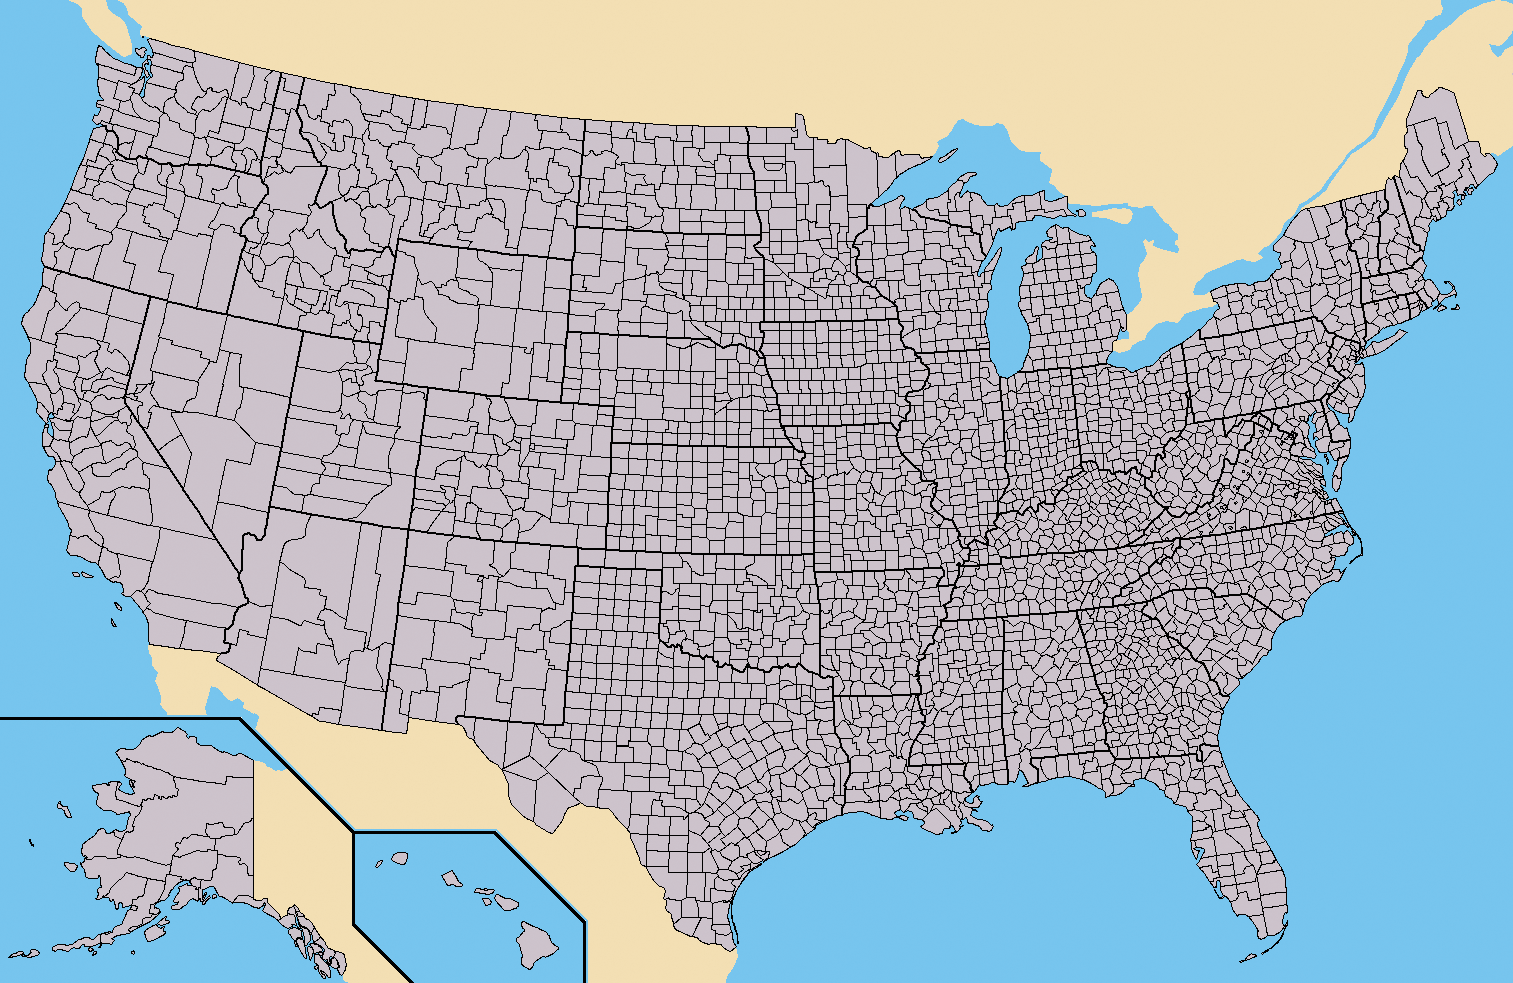 FileMap Of USA Fifty Percent Population By Countiespng Wikipedia - Us map wikipedia